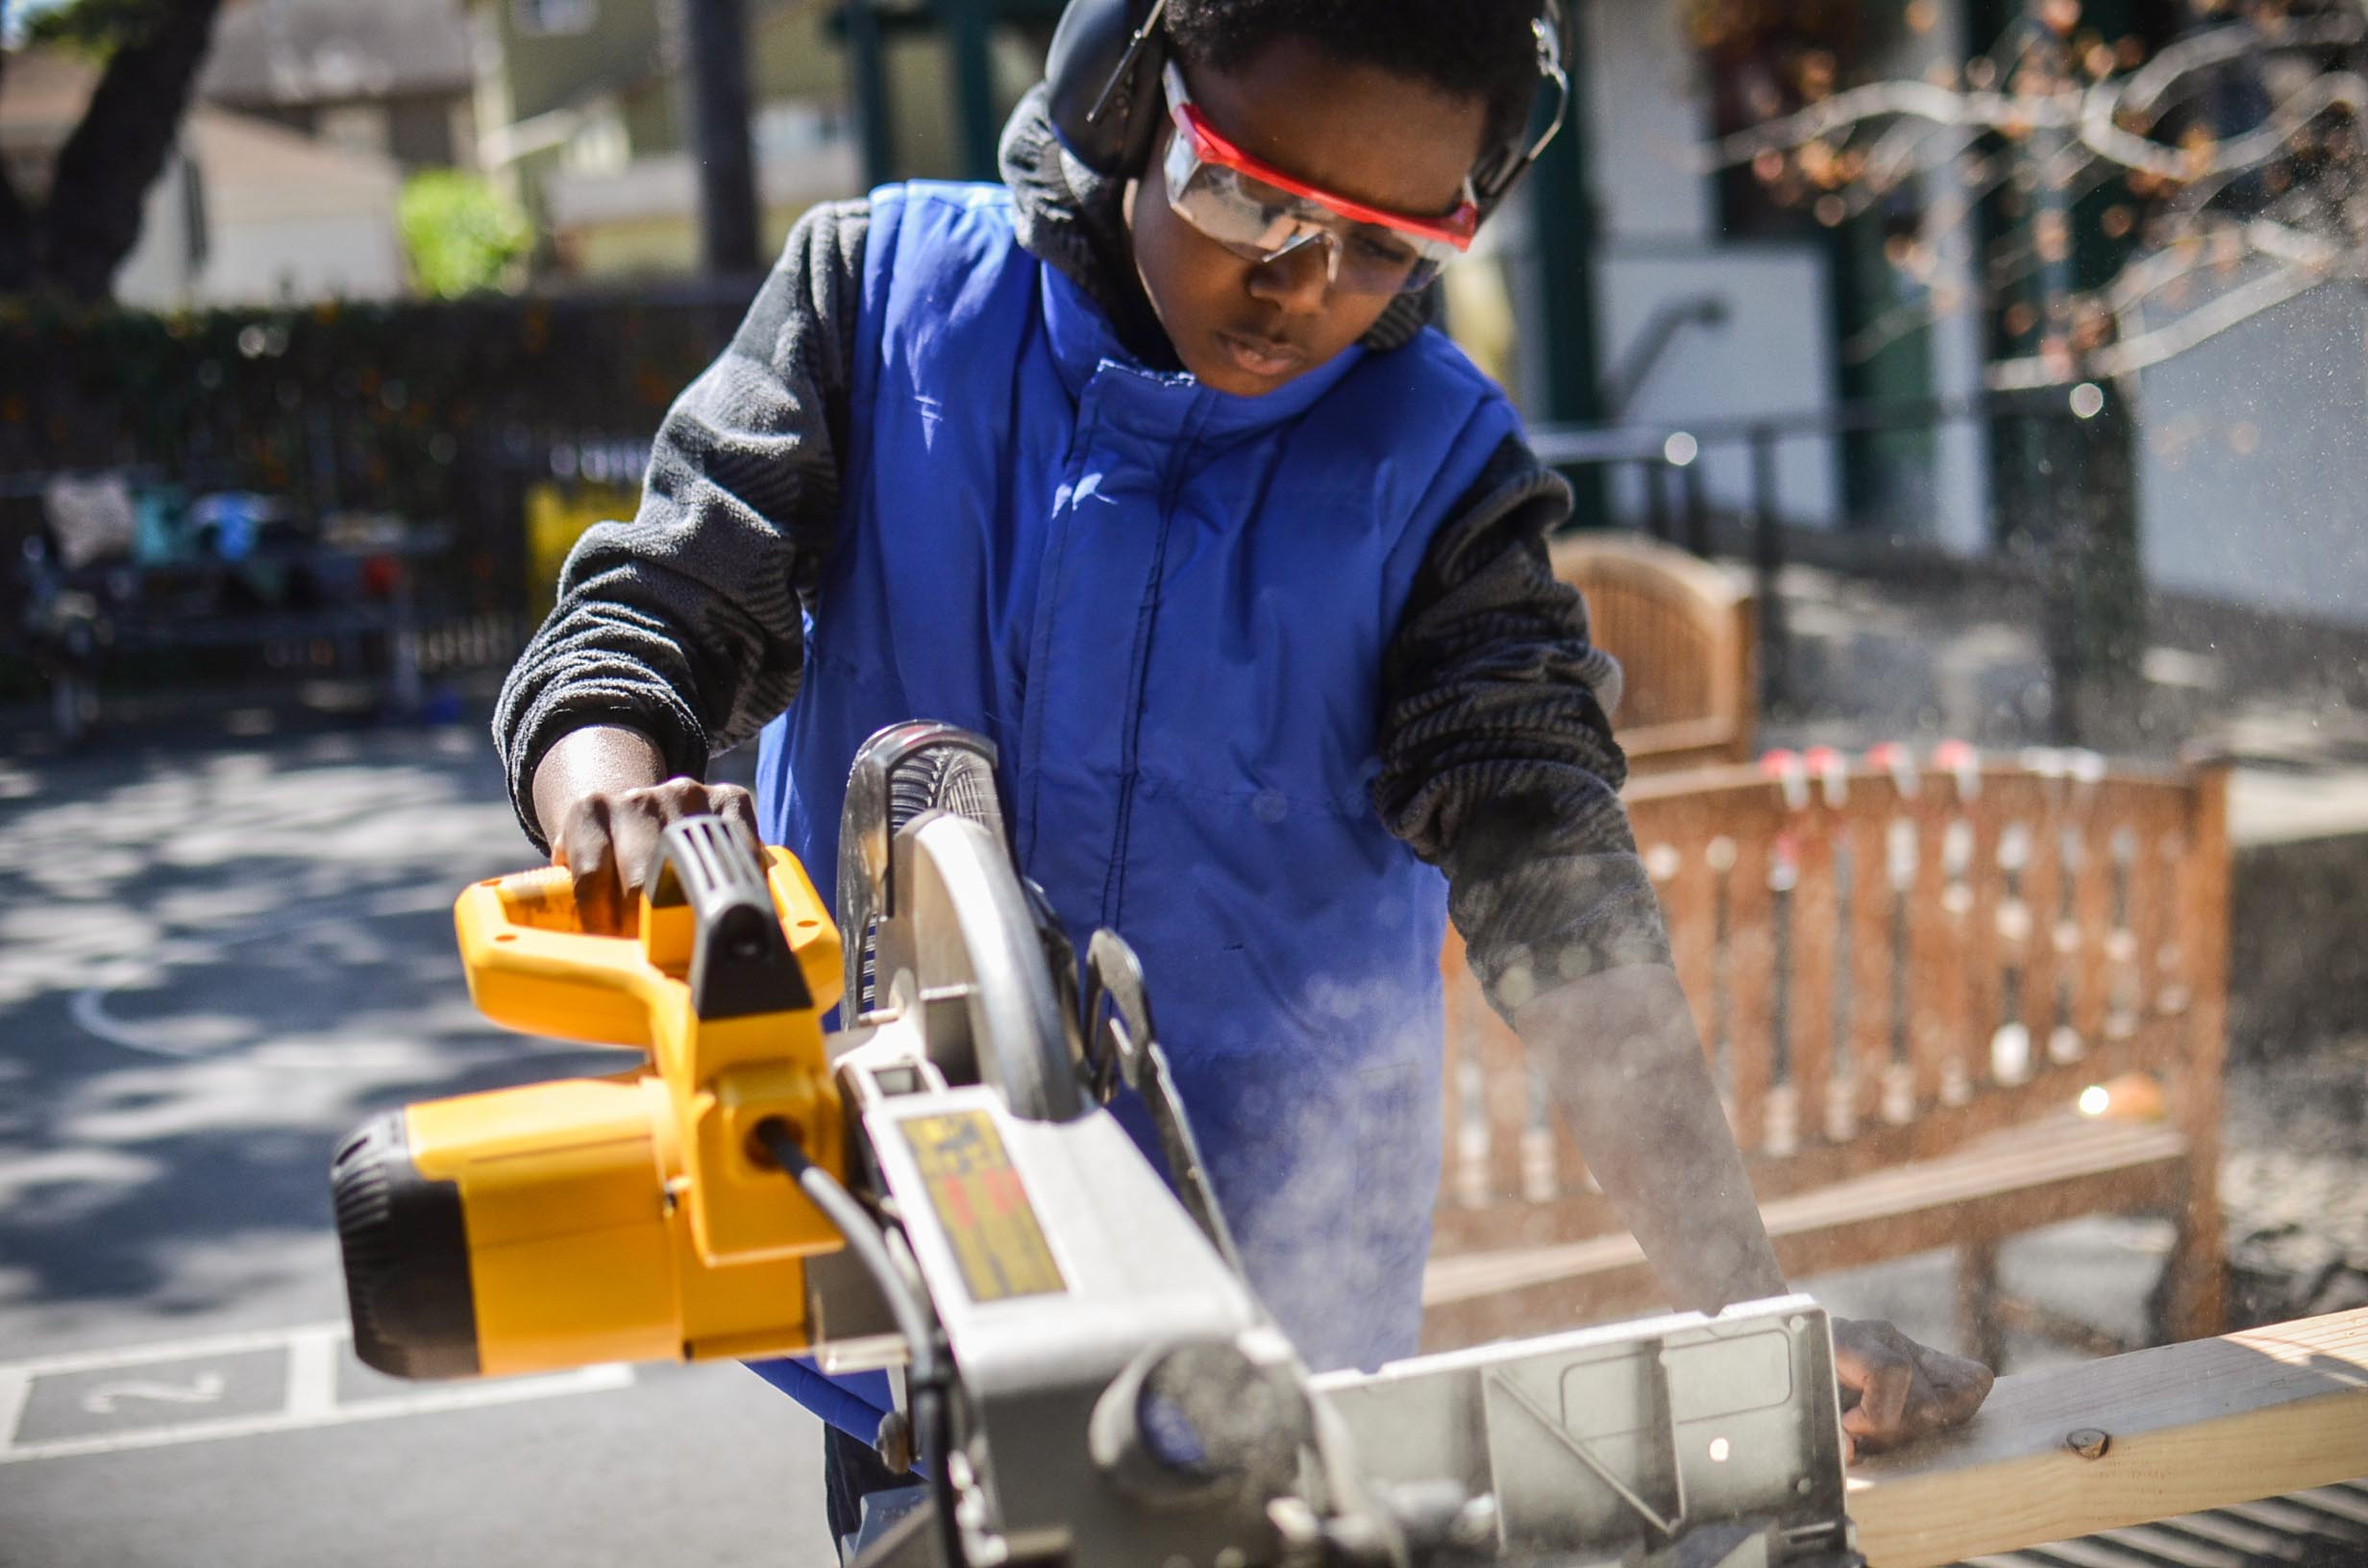 Taj makes another controlled and precise cut on the chop saw.